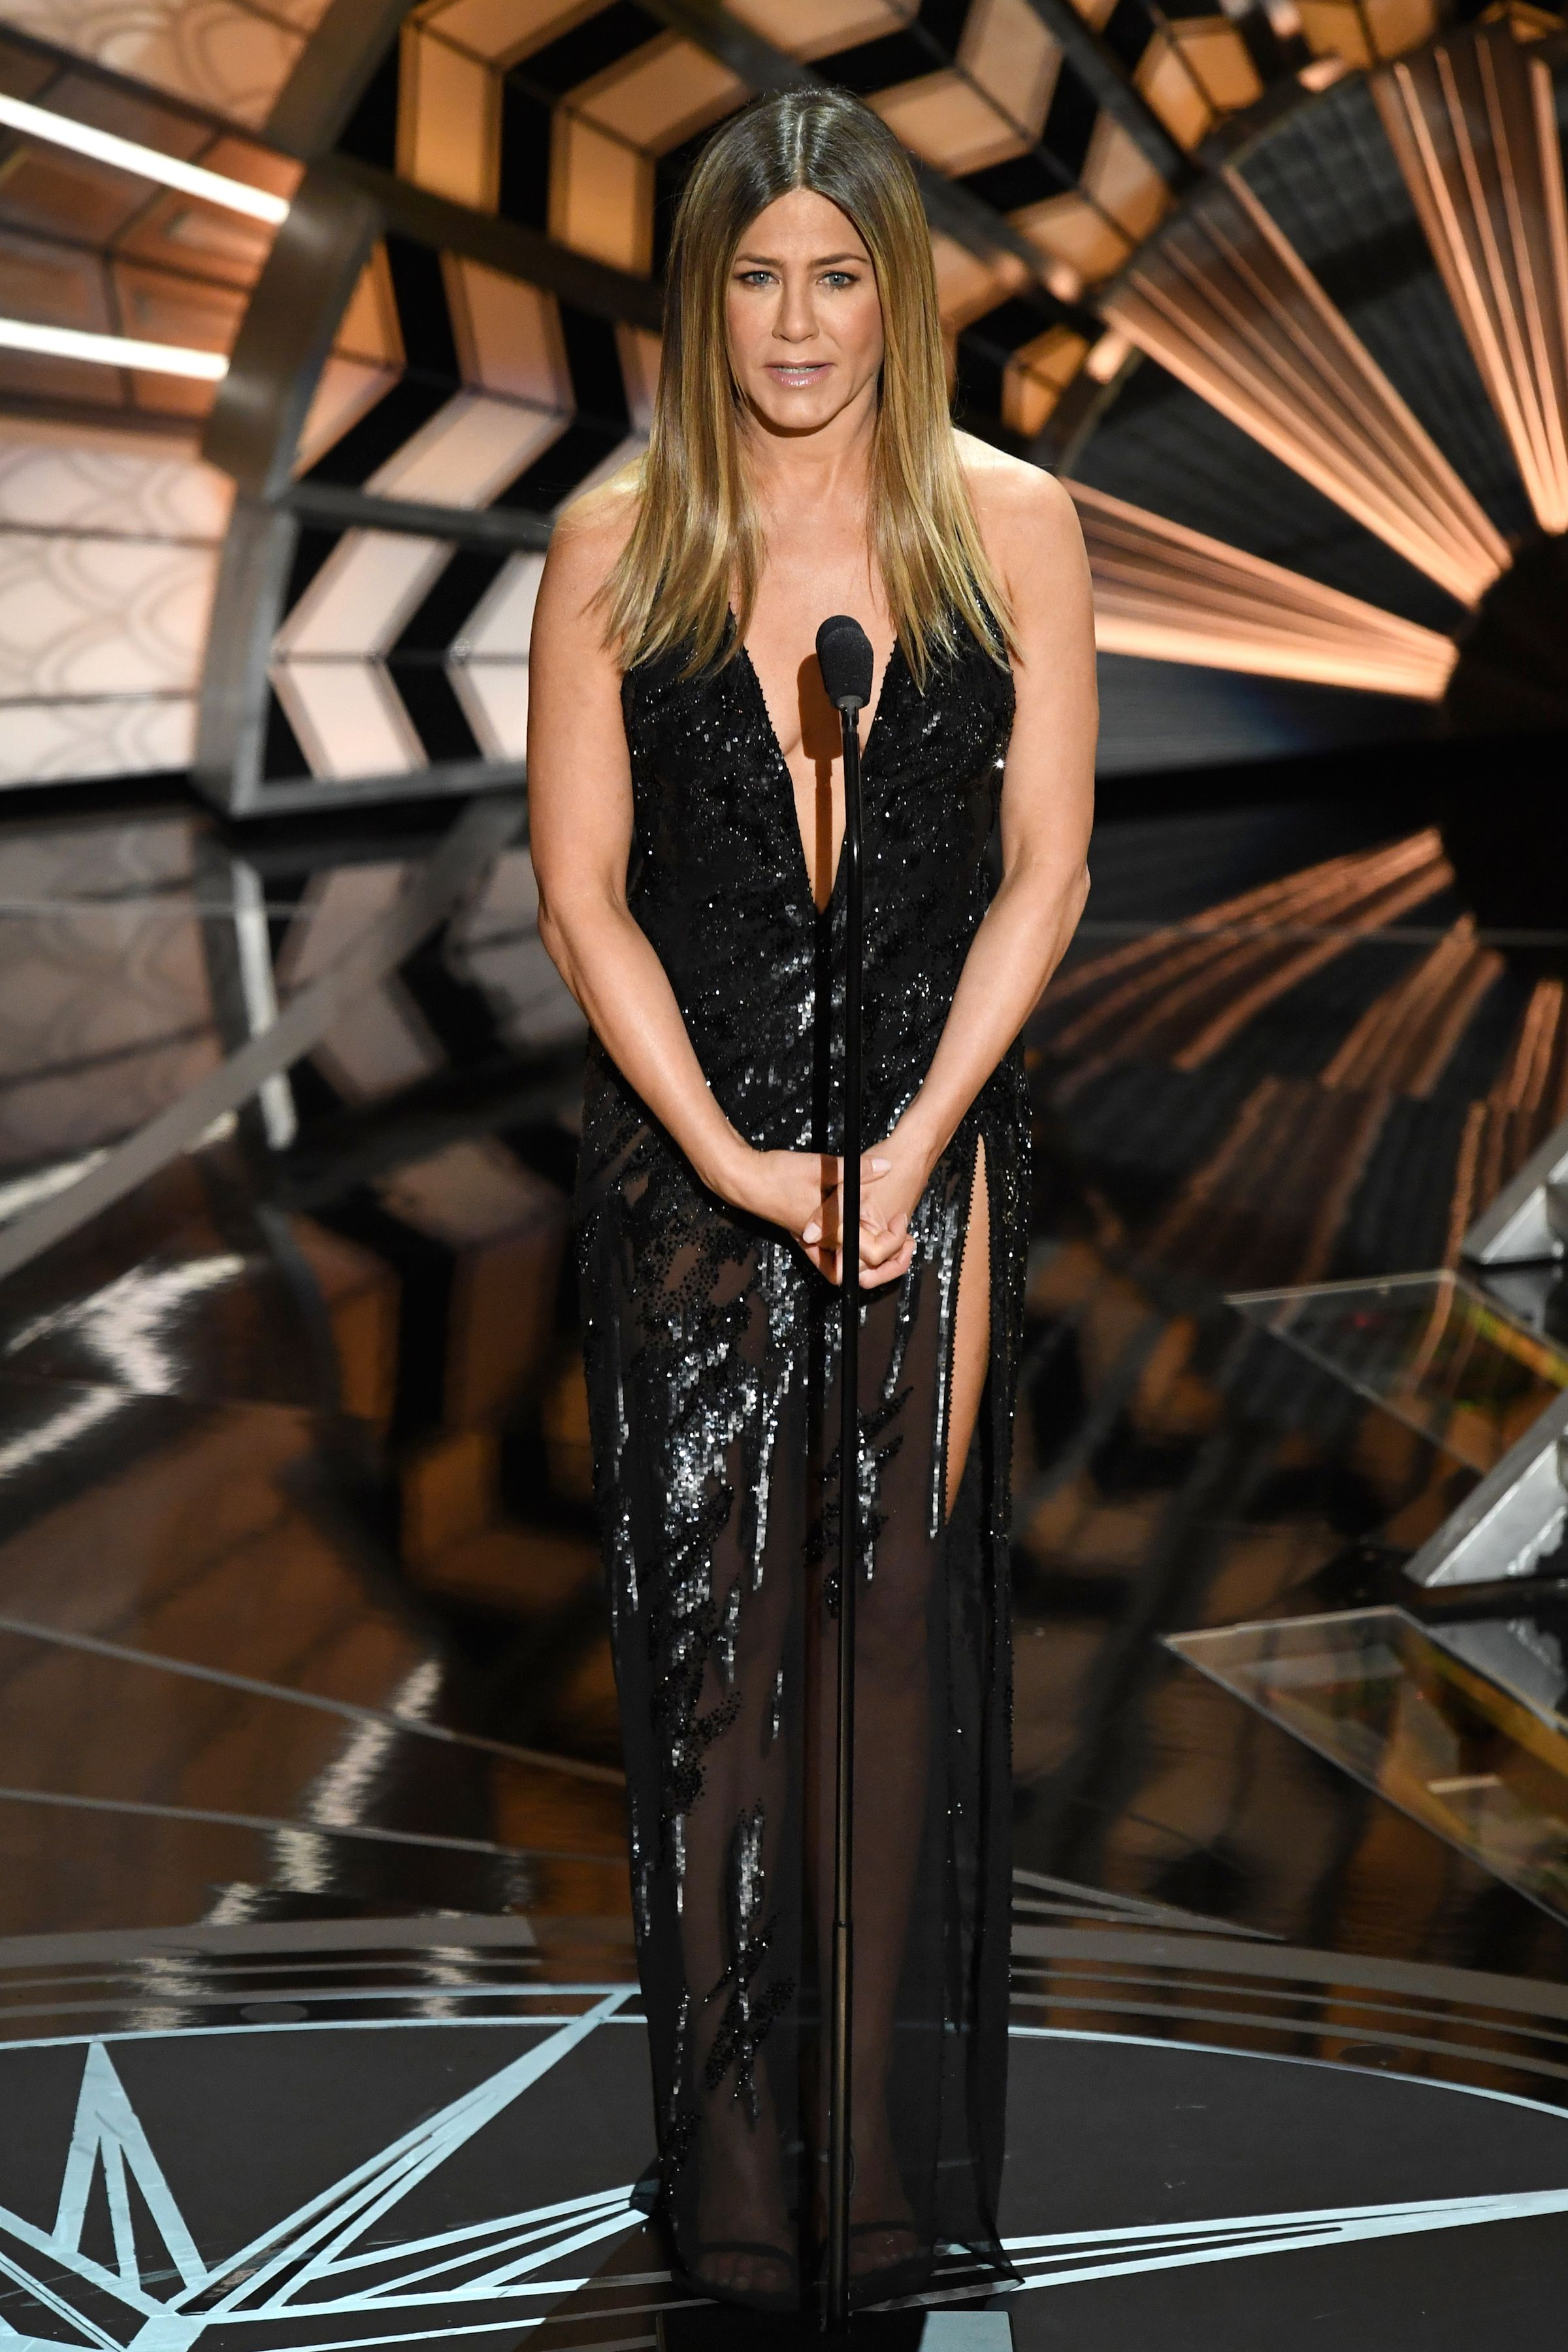 Jennifer Aniston, 2017 Aniston presenting an award in Atelier Versace proves that black doesn't have to mean boring. The open leg, v-neck style has been popular recently among celebrities like Jennifer Lawrence .